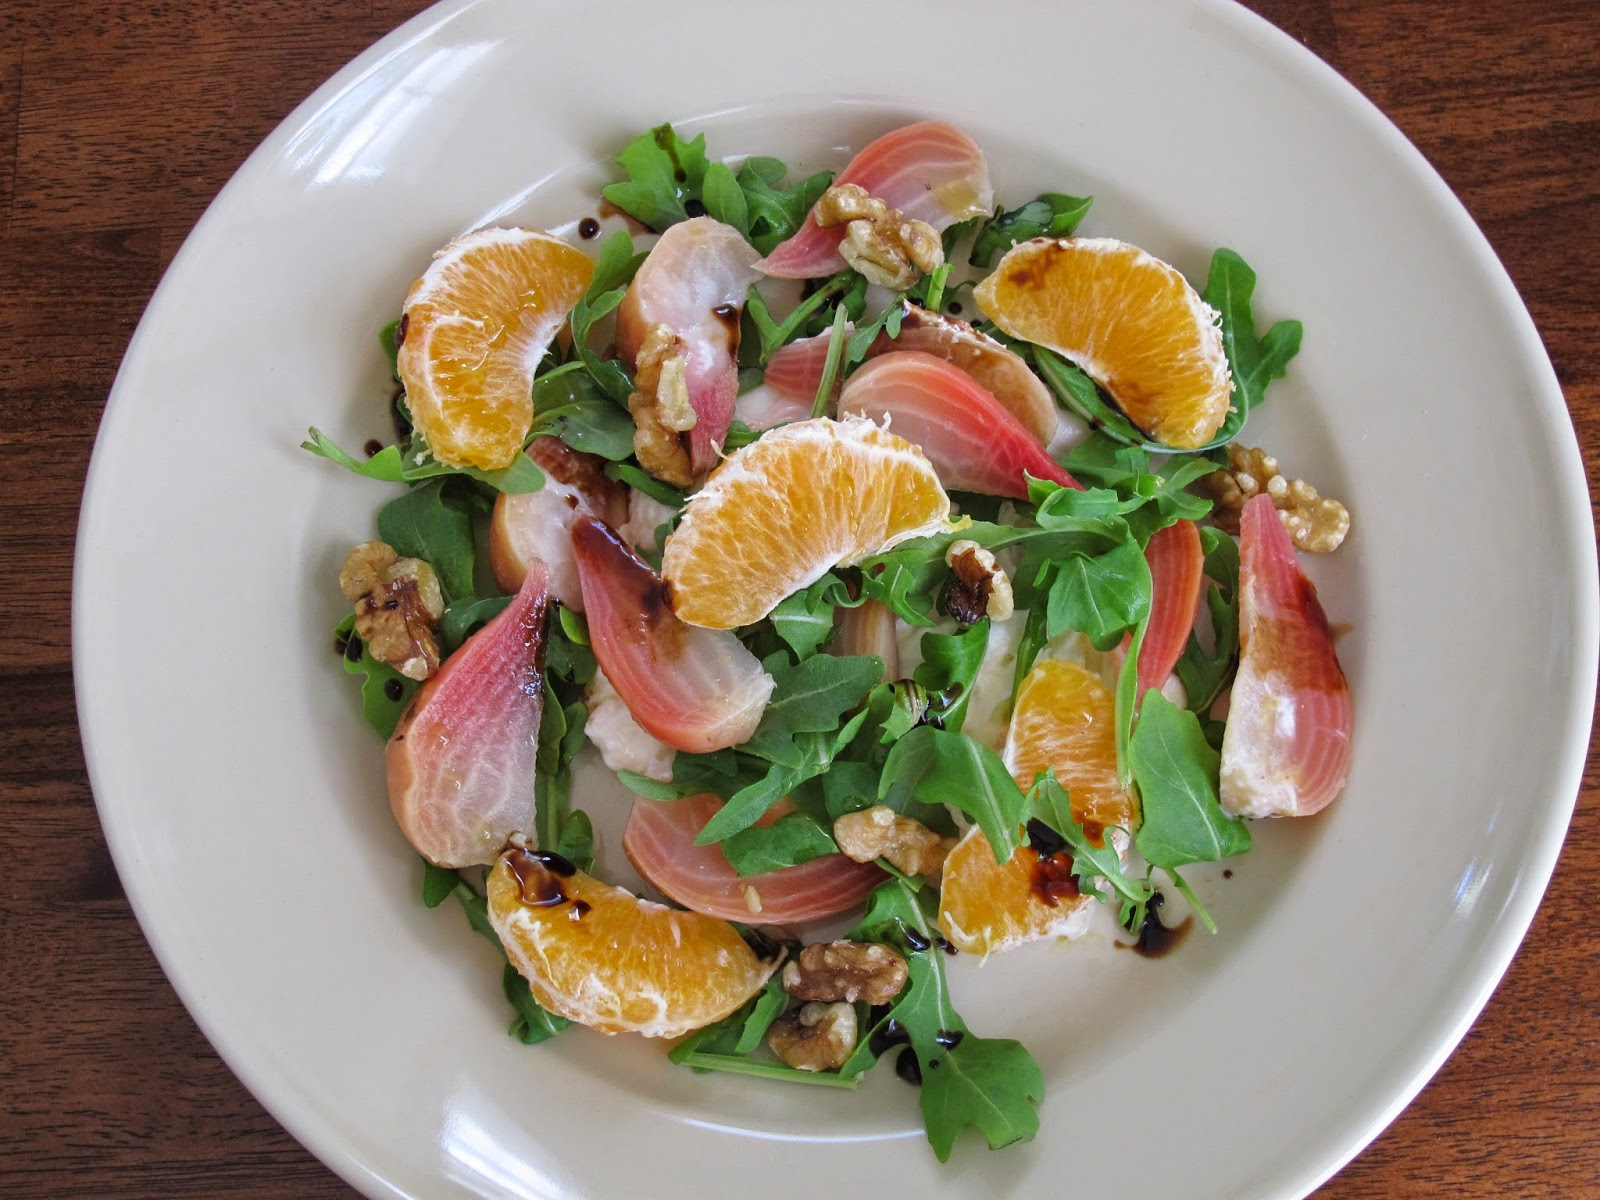 Burrata, Beet, Tangerine, Arugula, and Walnut Salad